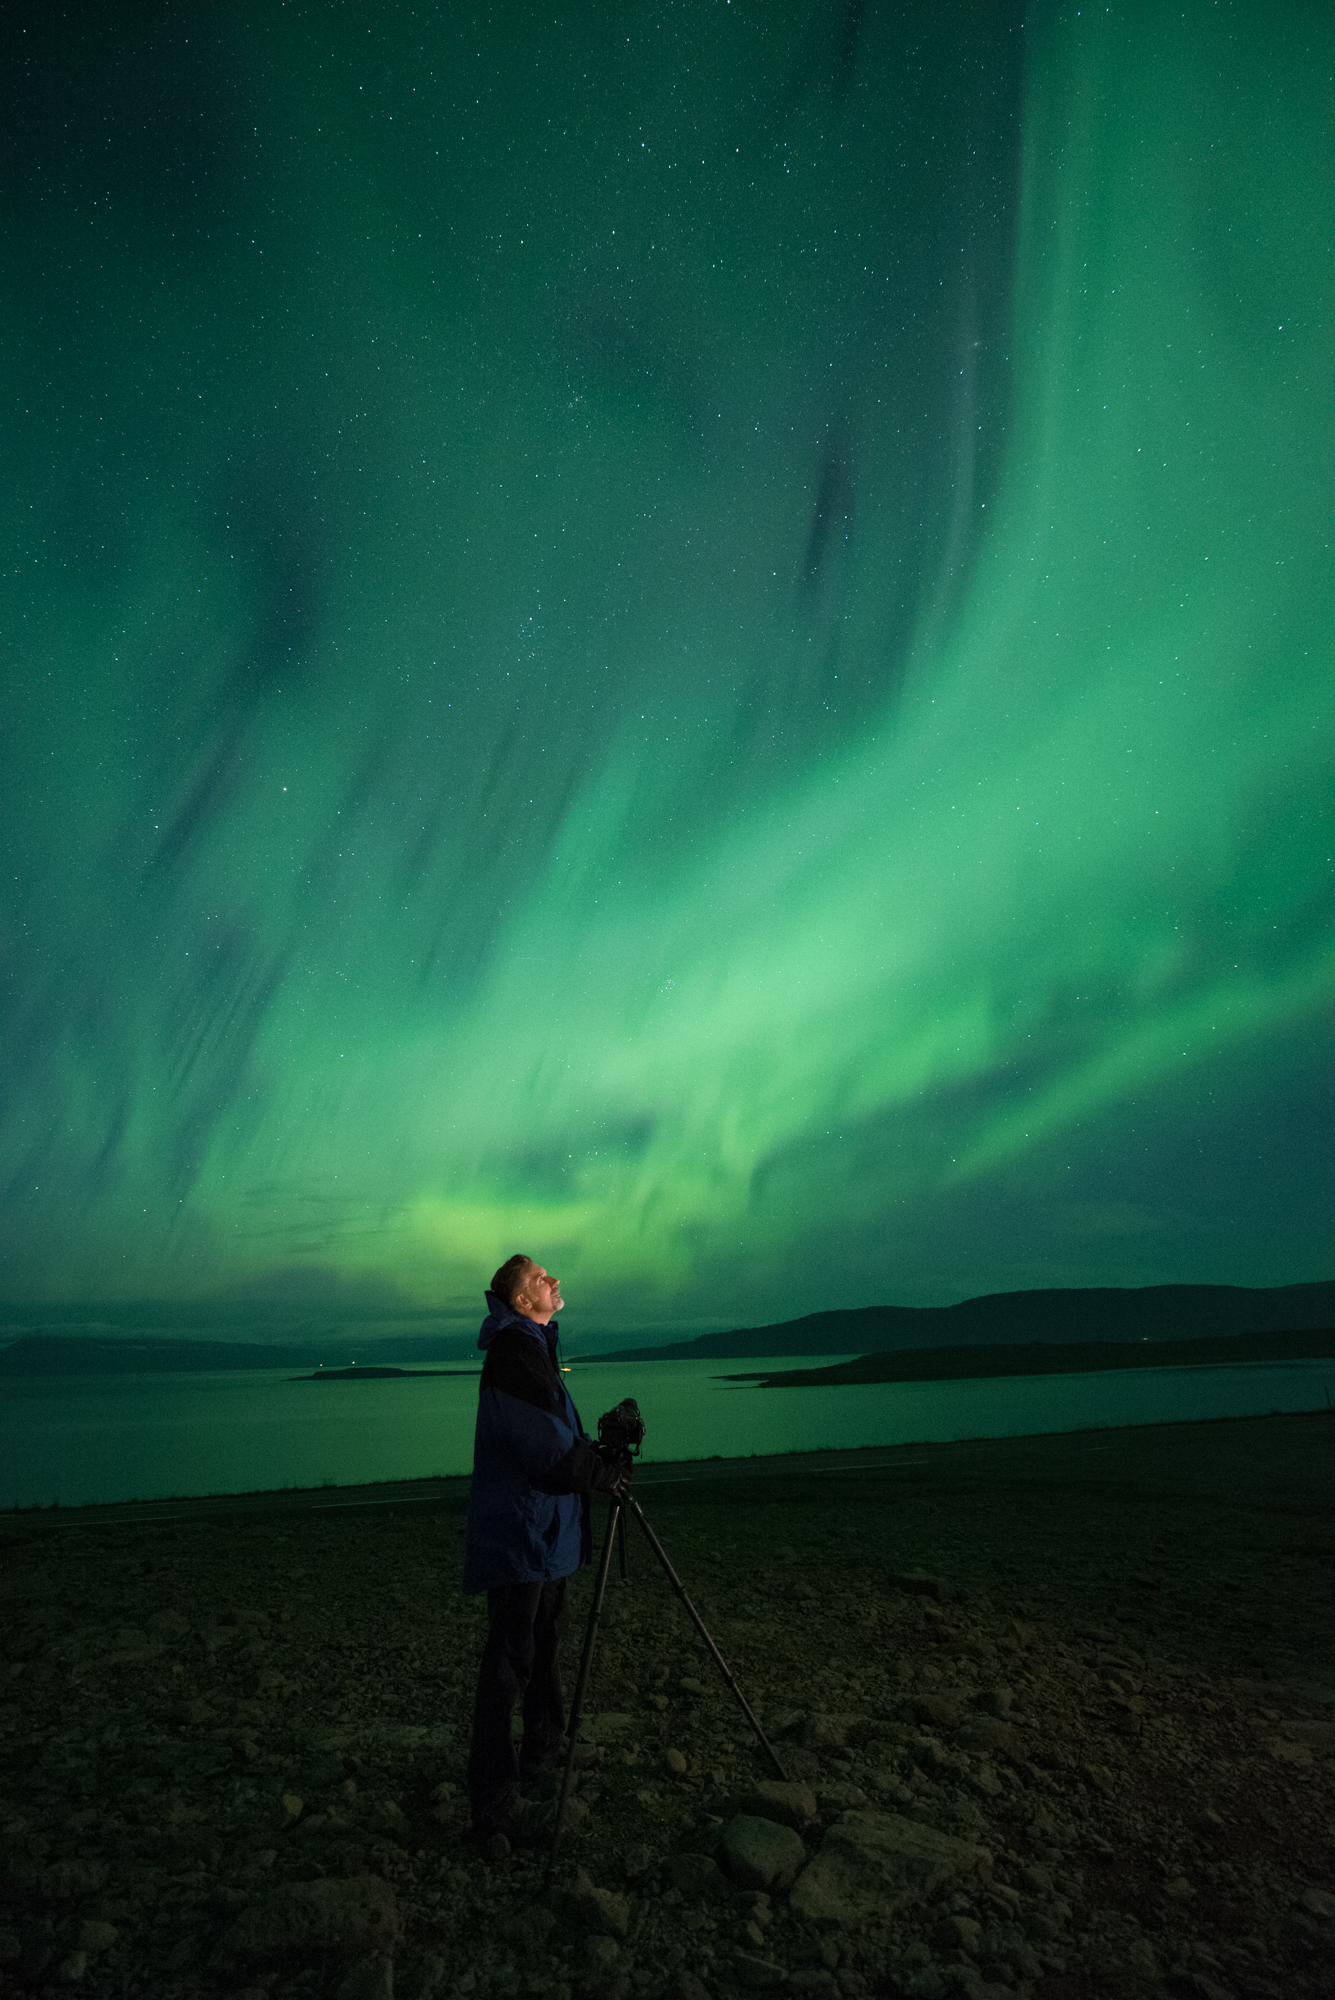 Lance under an Icelandic aurora. 4 seconds, f/2.8, ISO 6400. Nikon D750 with a 14mm lens. © Gabriel Biderman.